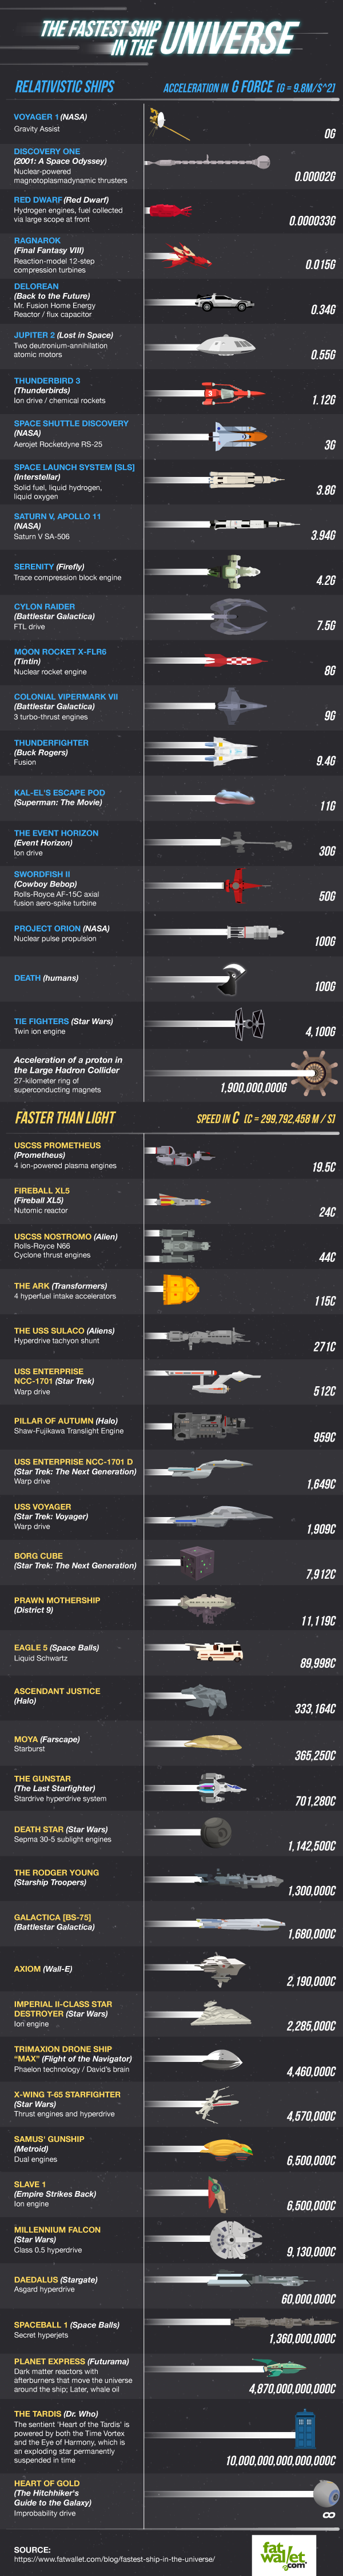 The Fastest Ship in the Universe by FatWallet